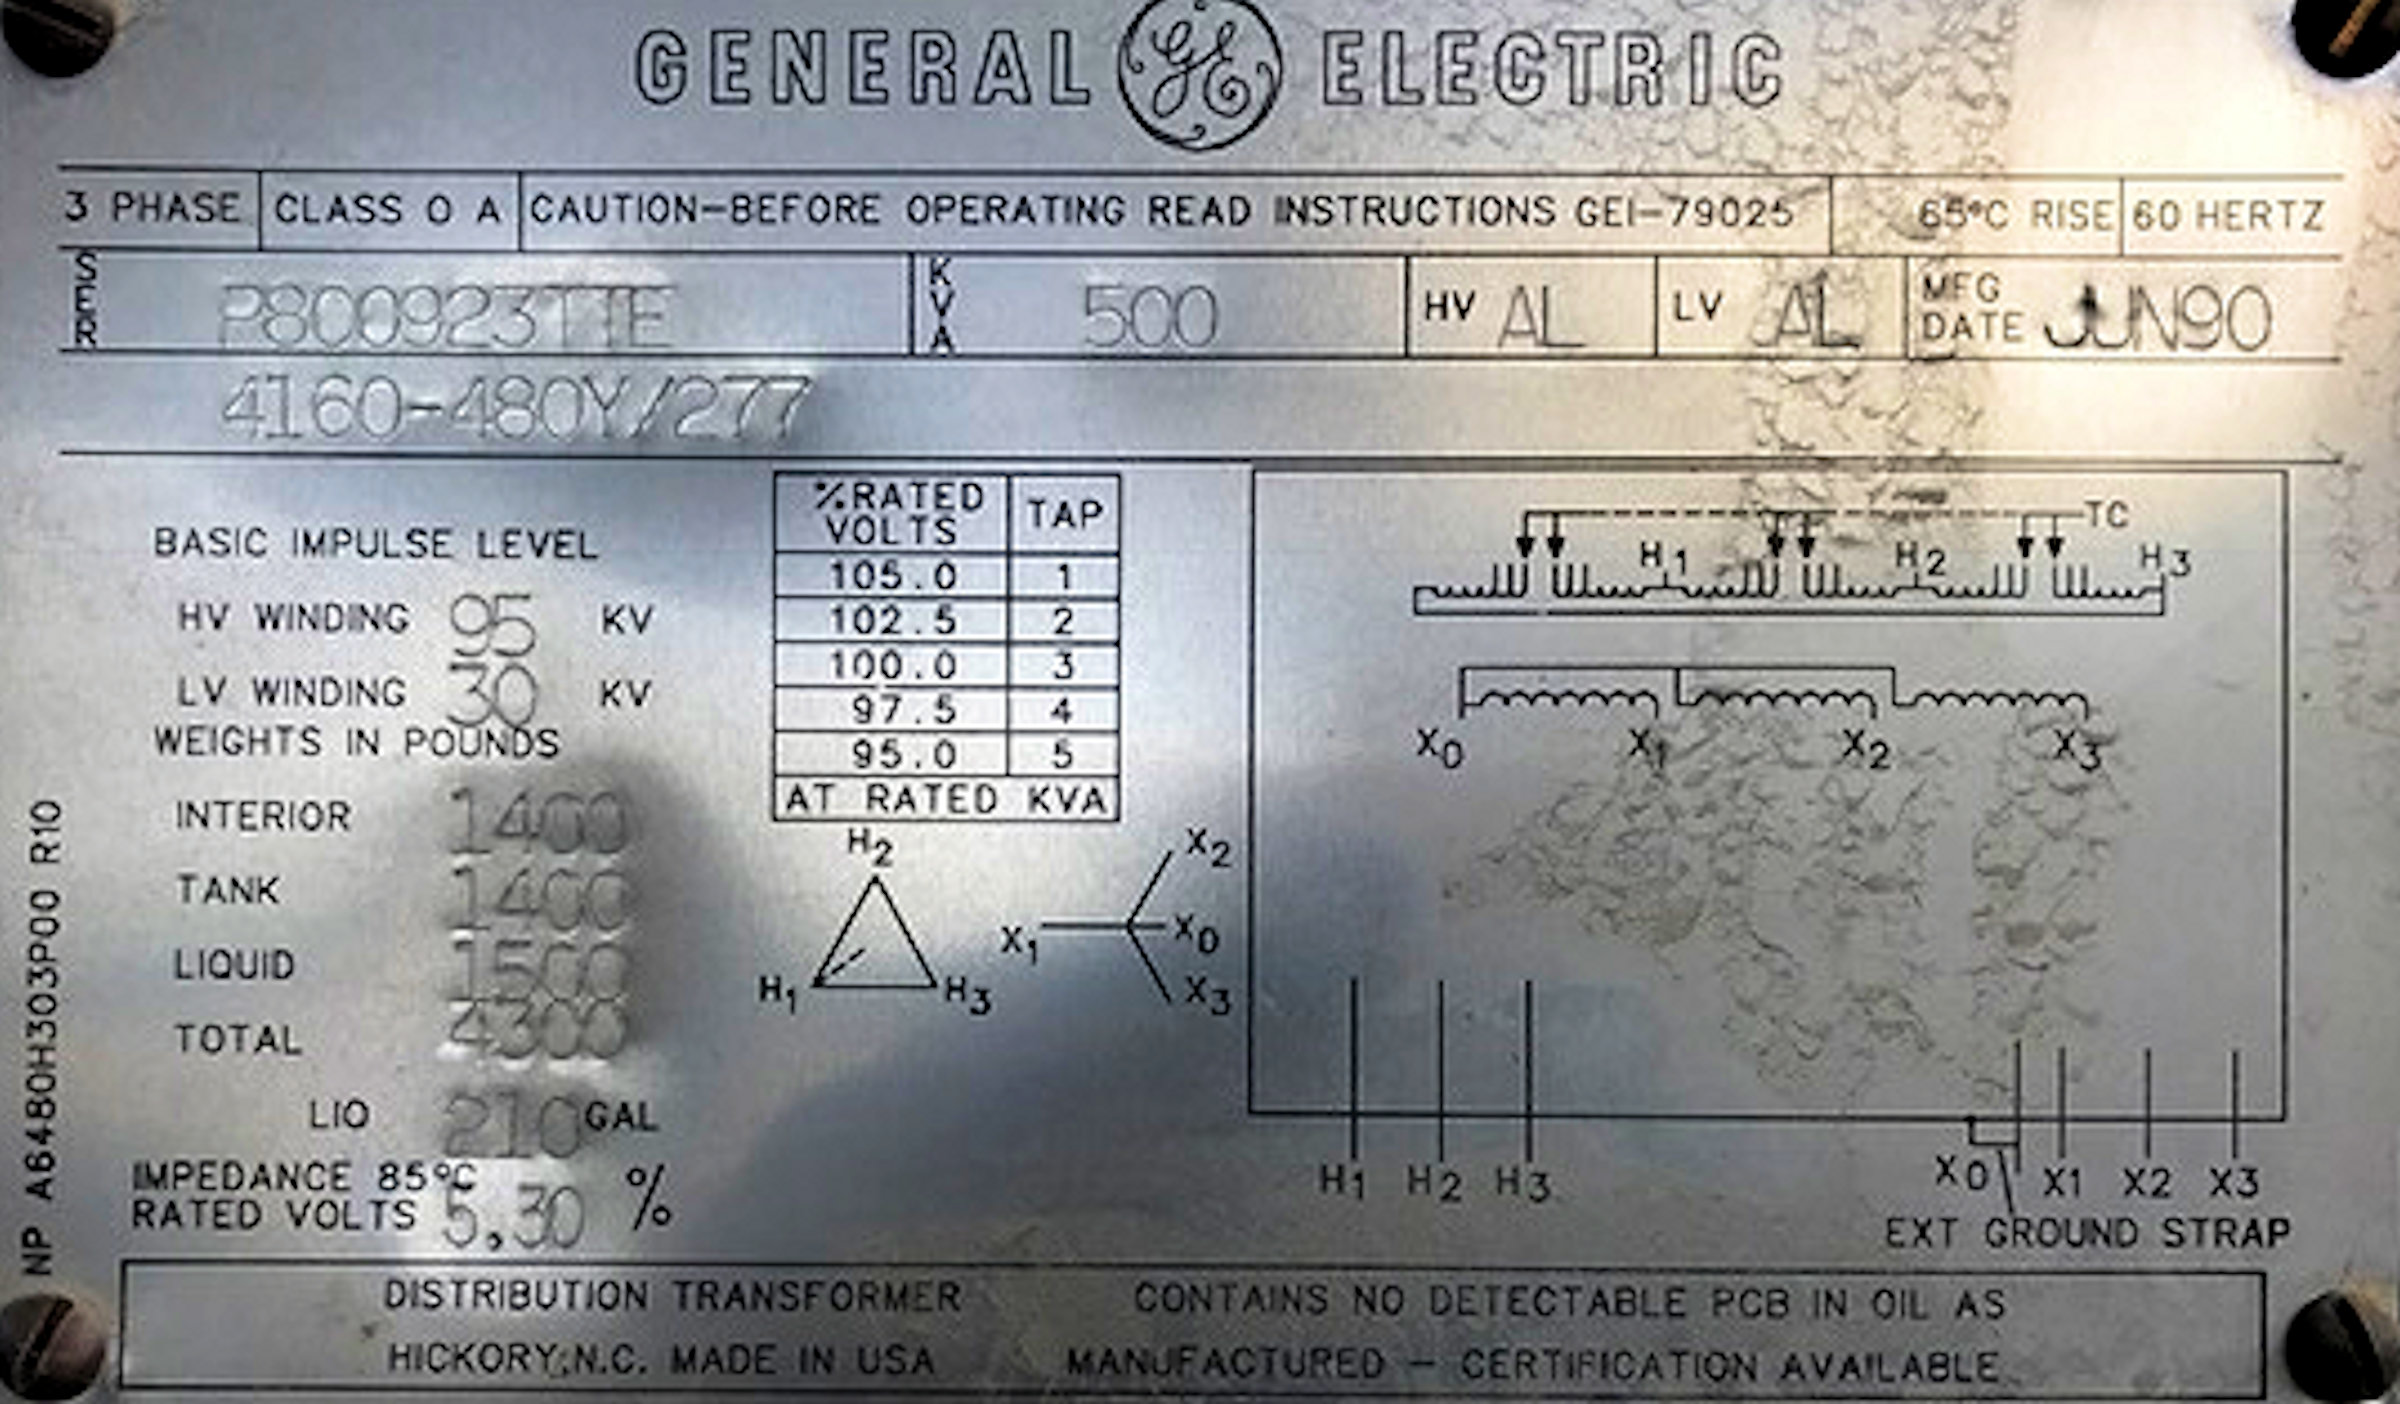 2 Units - General Electric 500 Kva 3-phase Transformers